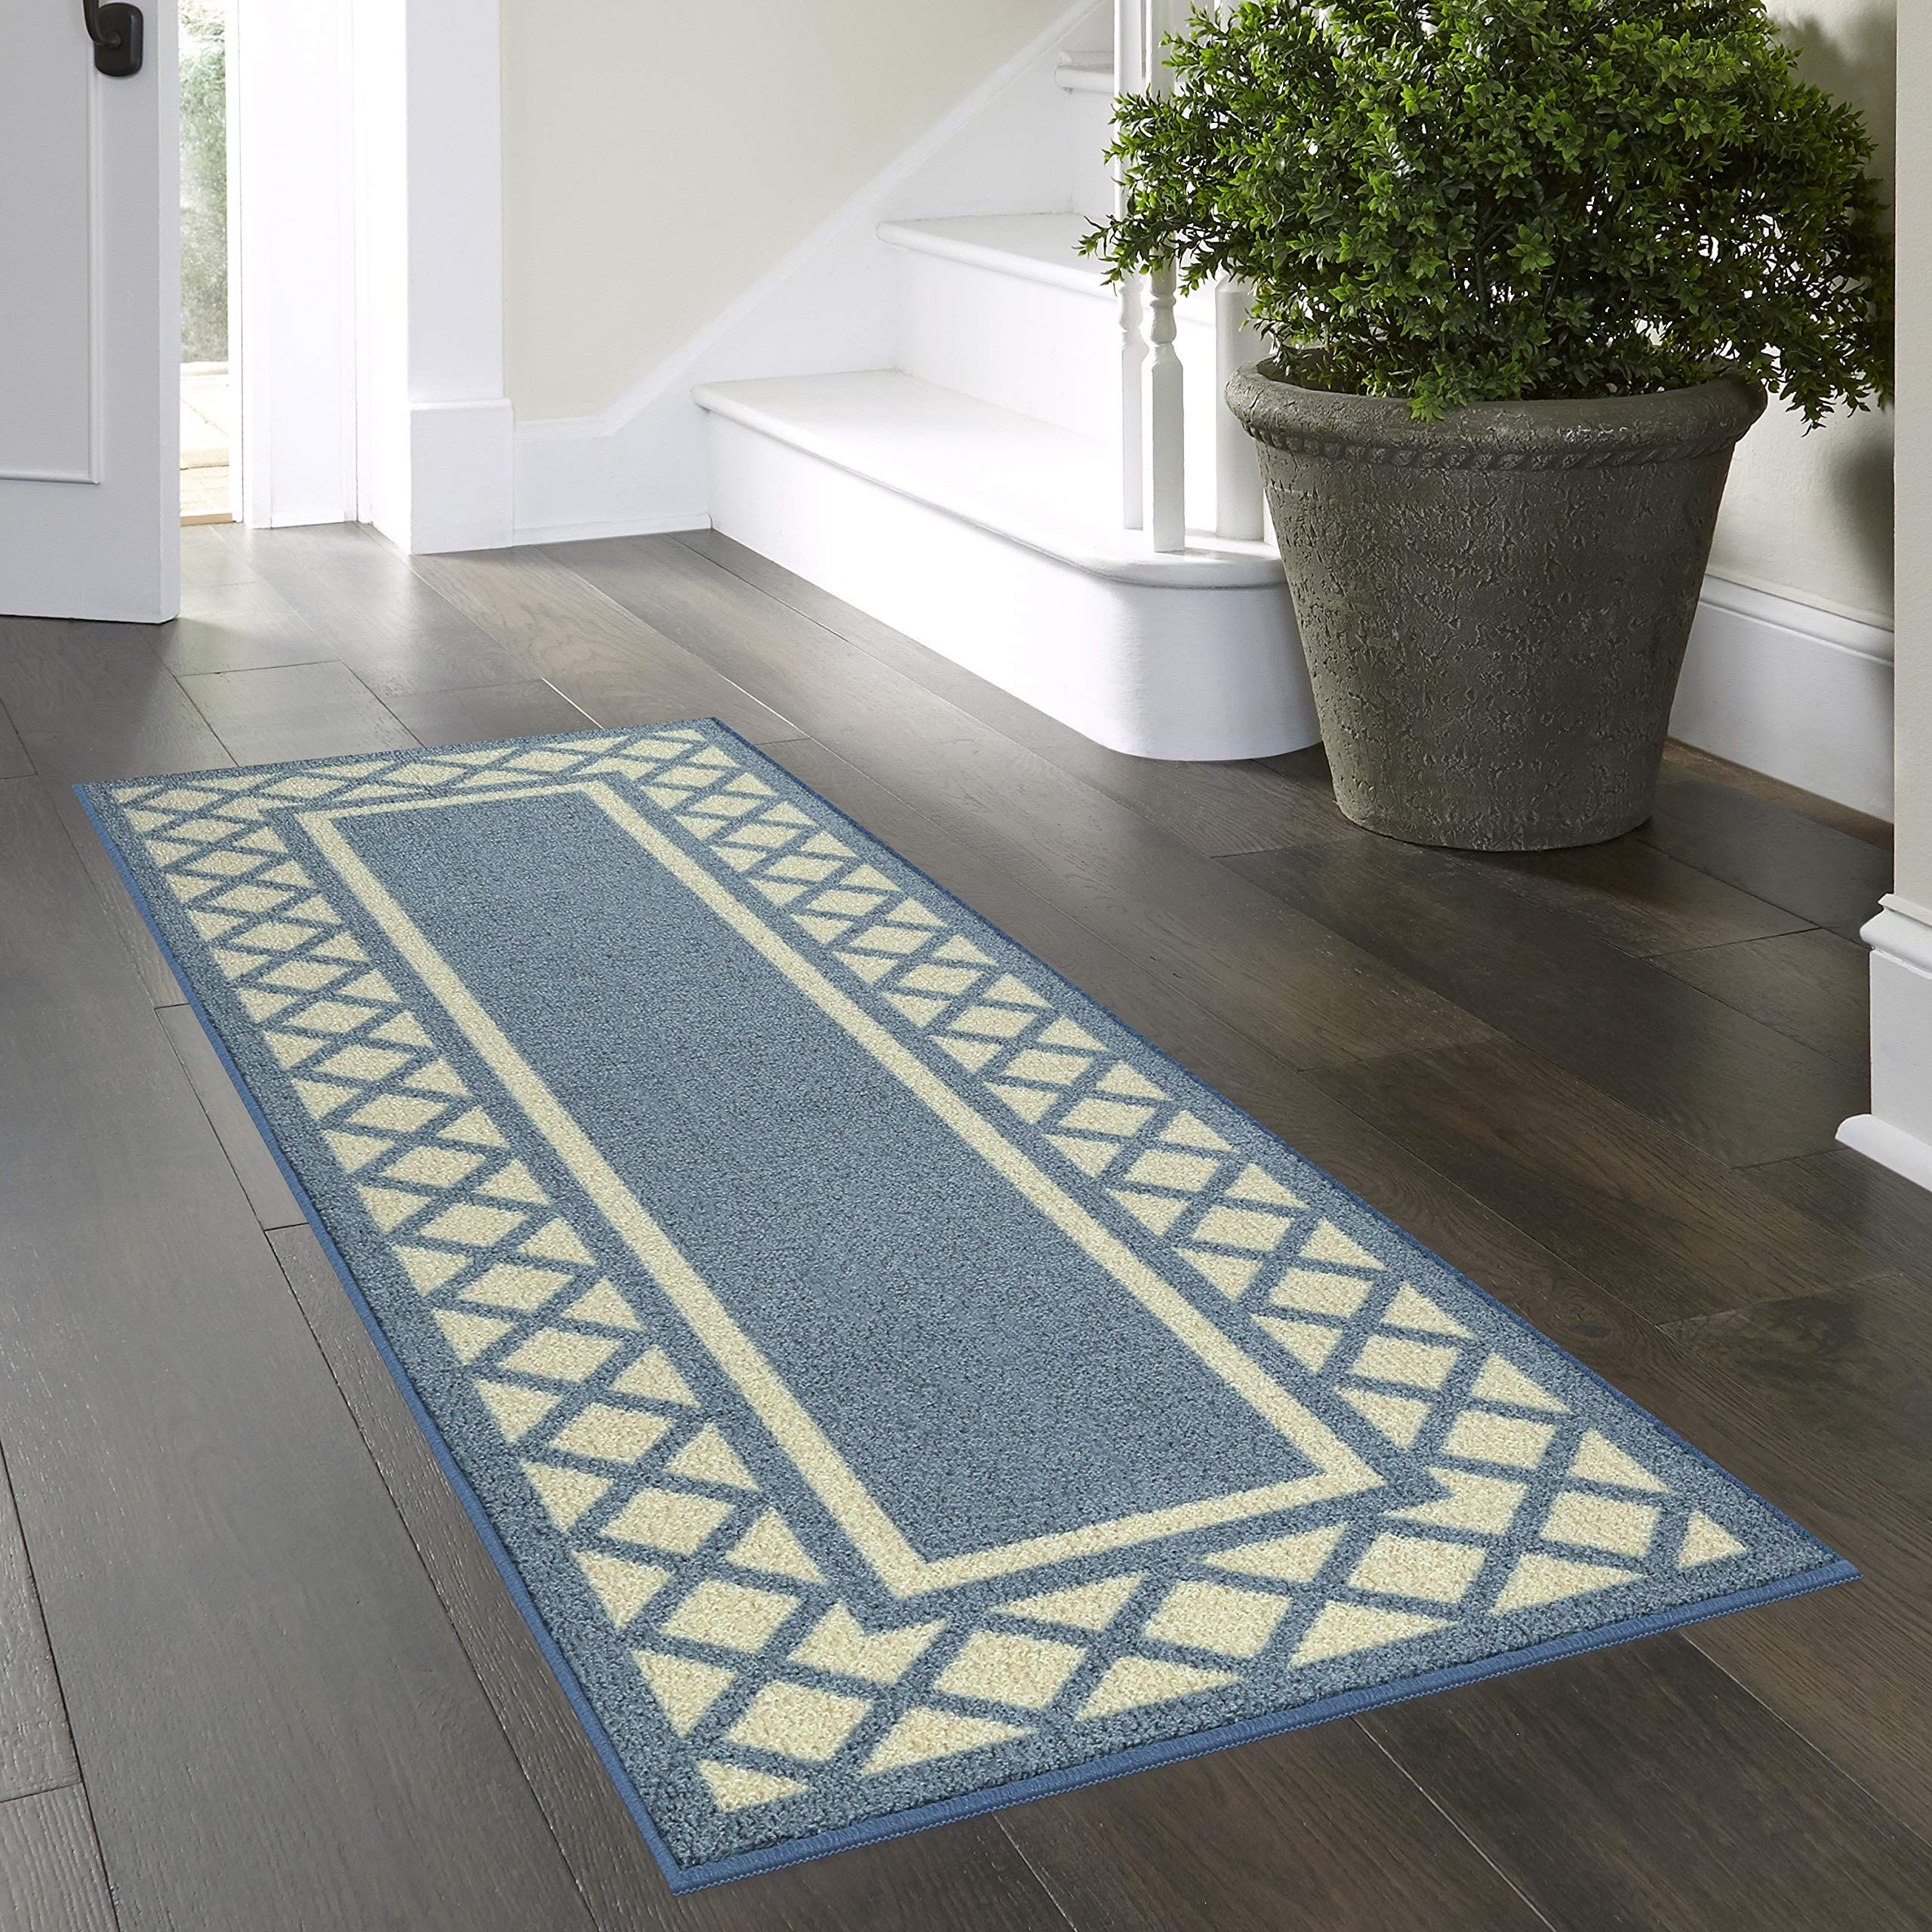 Maples Rugs Bella 2 X 6 Non Skid Hallway Entry Rugs Runners Made